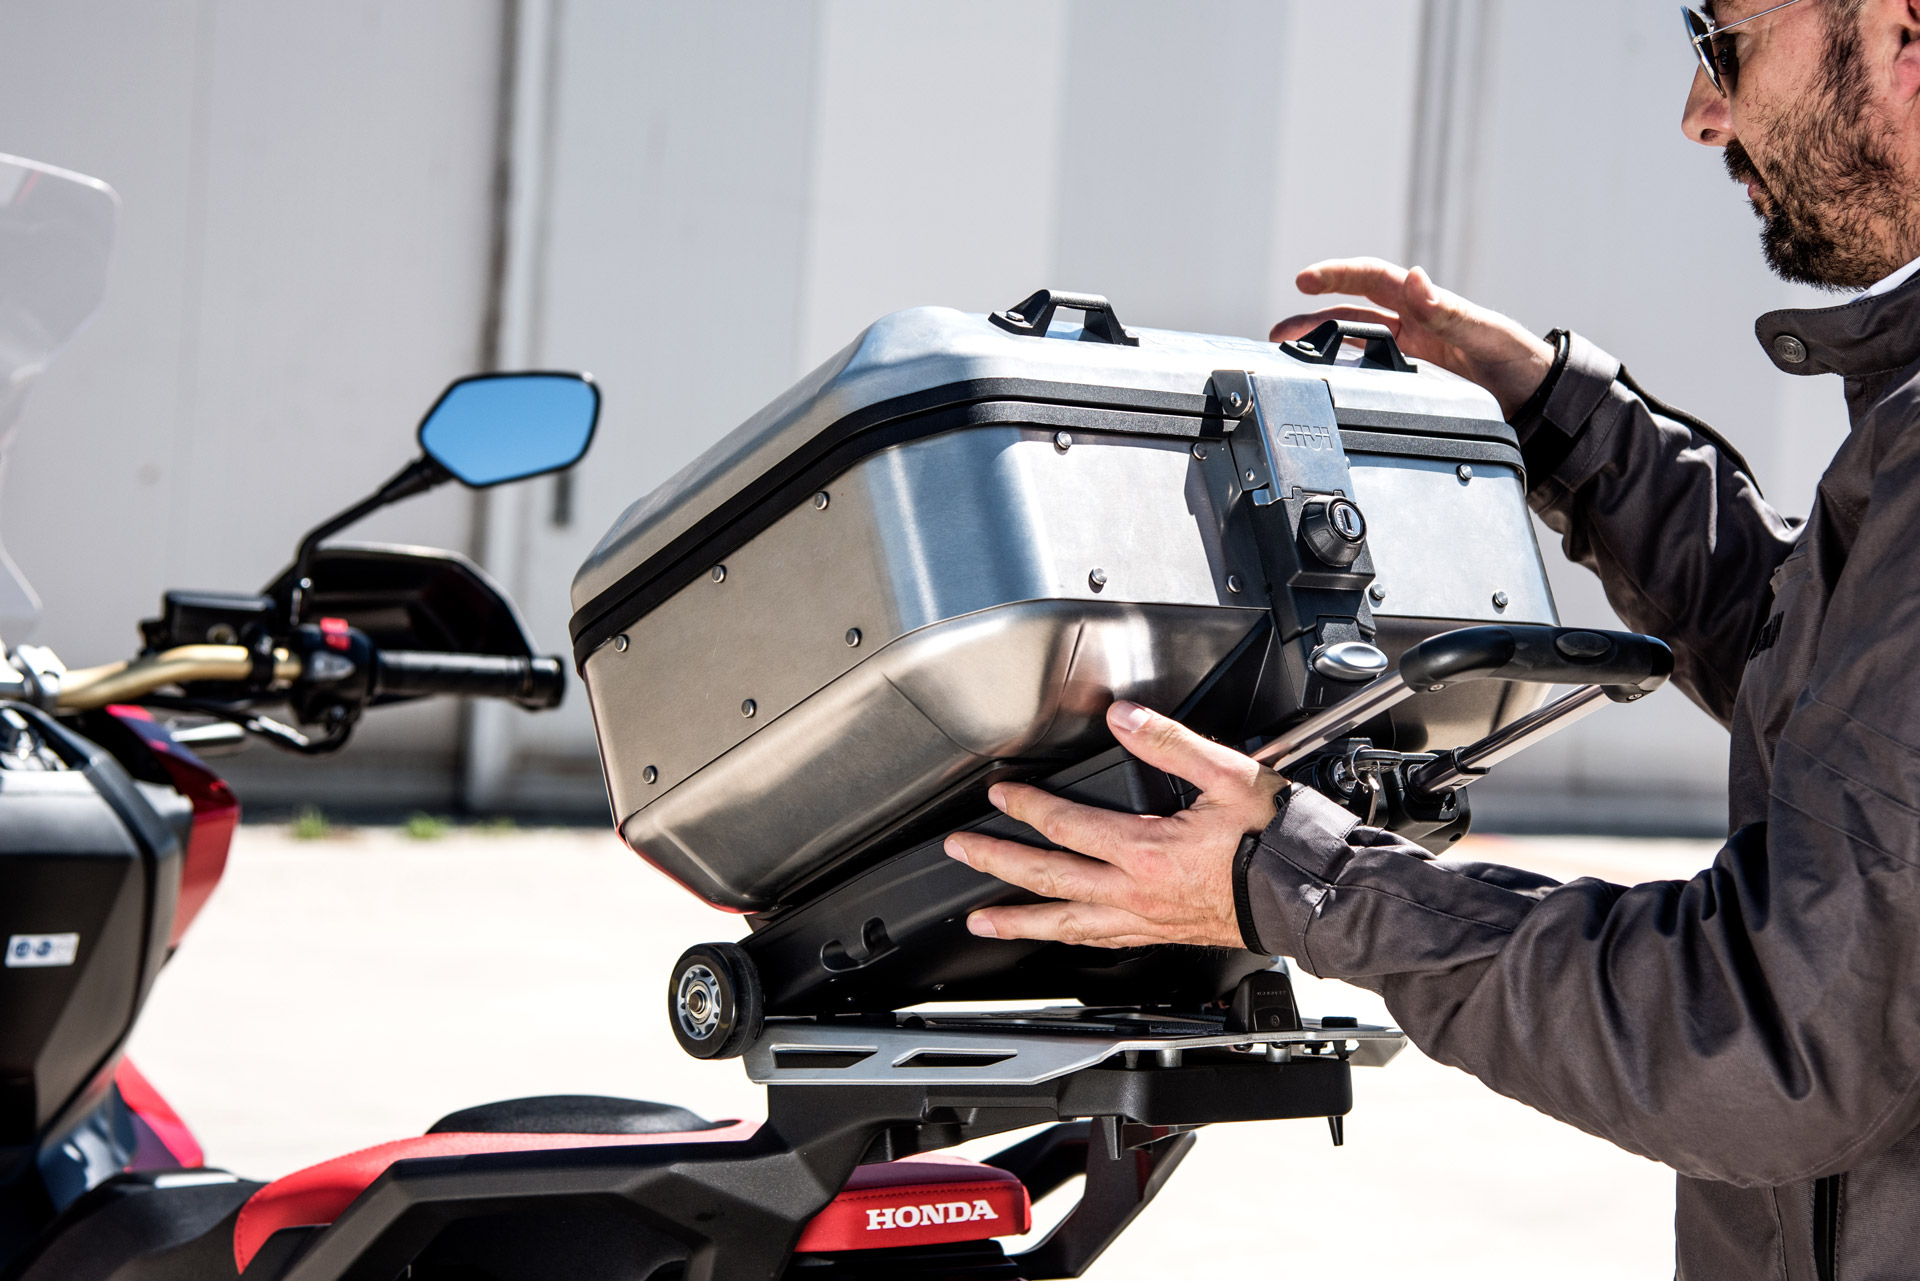 THE+NEW+S410+GIVI+TROLLEY+HAS+JUST+ARRIVED%21